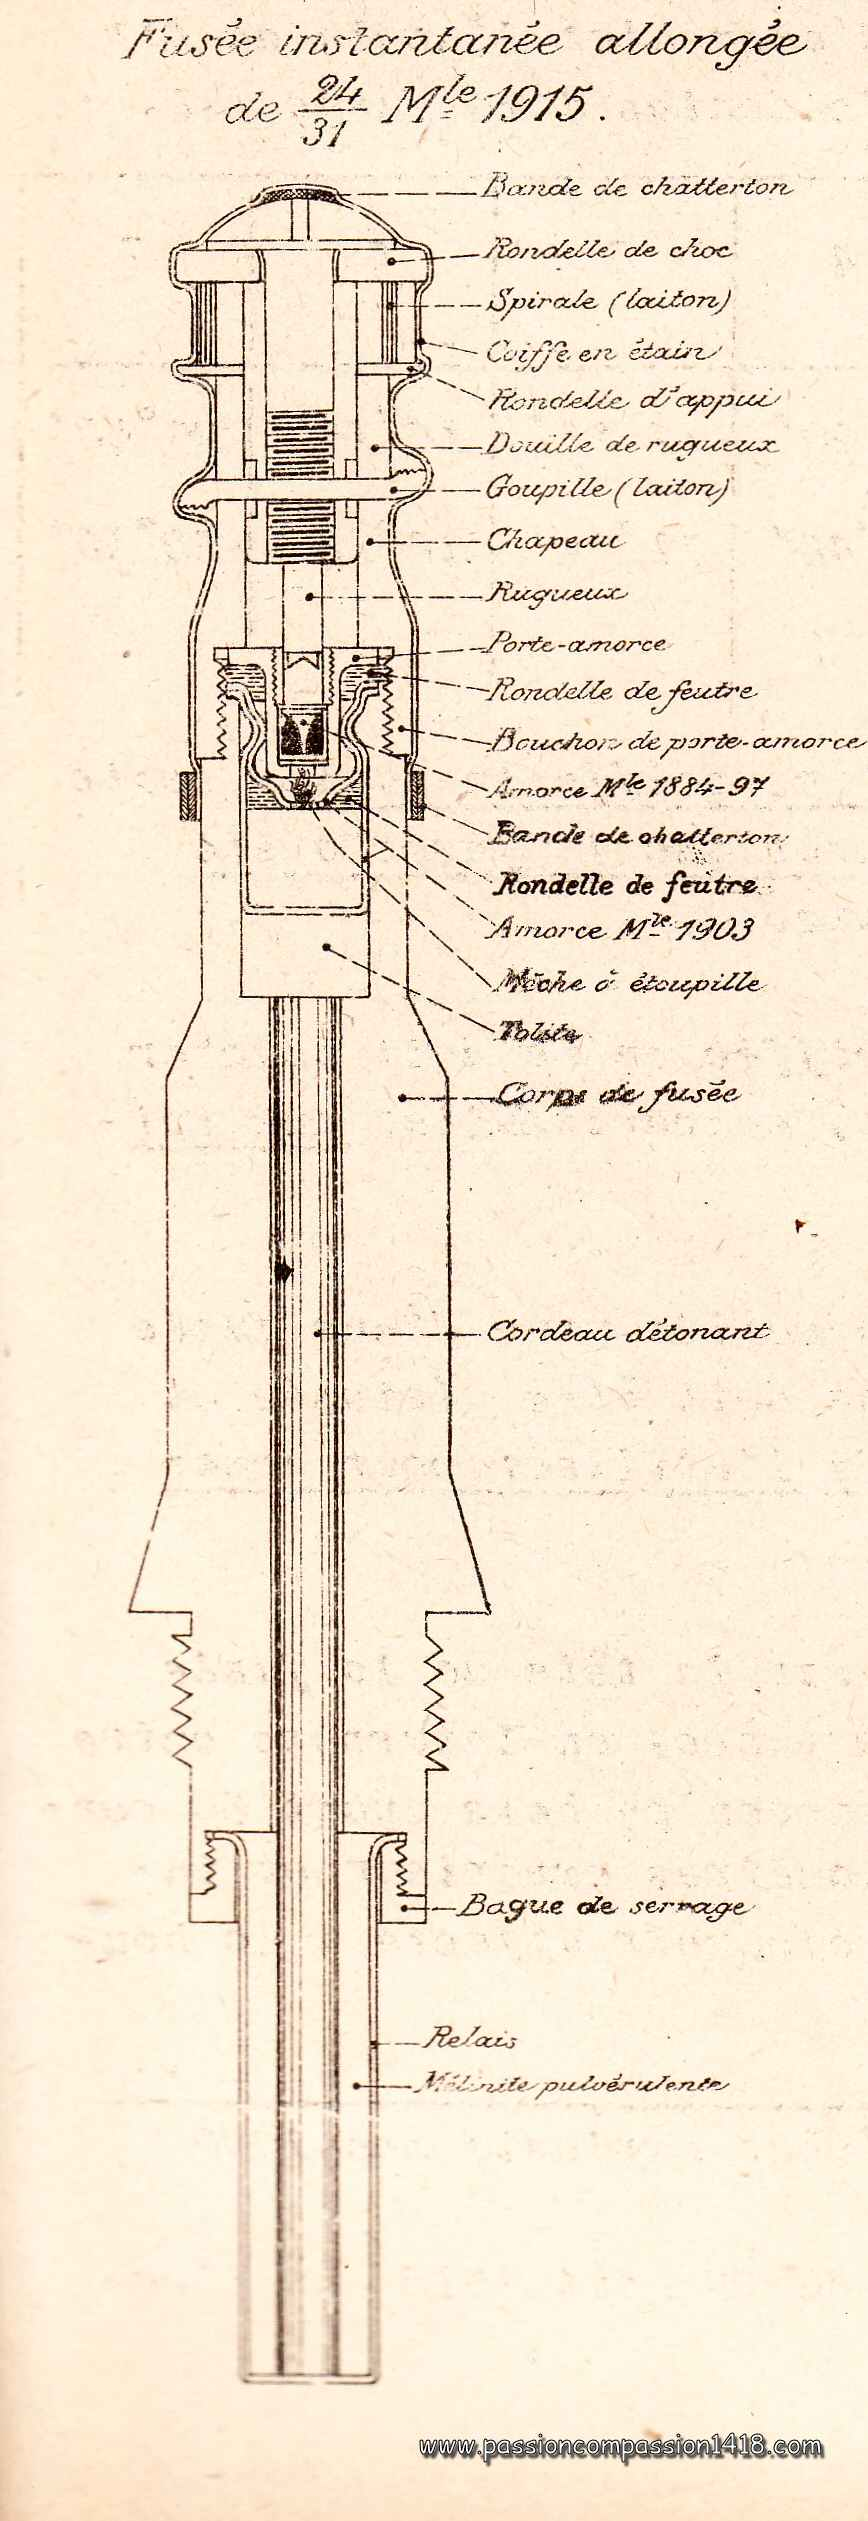 Passion Compassion 1914 1918 Ww1 Militaria And Technical Generalised Diagram To Give An Idea Of The German Trench Structure French Superquick Fuze